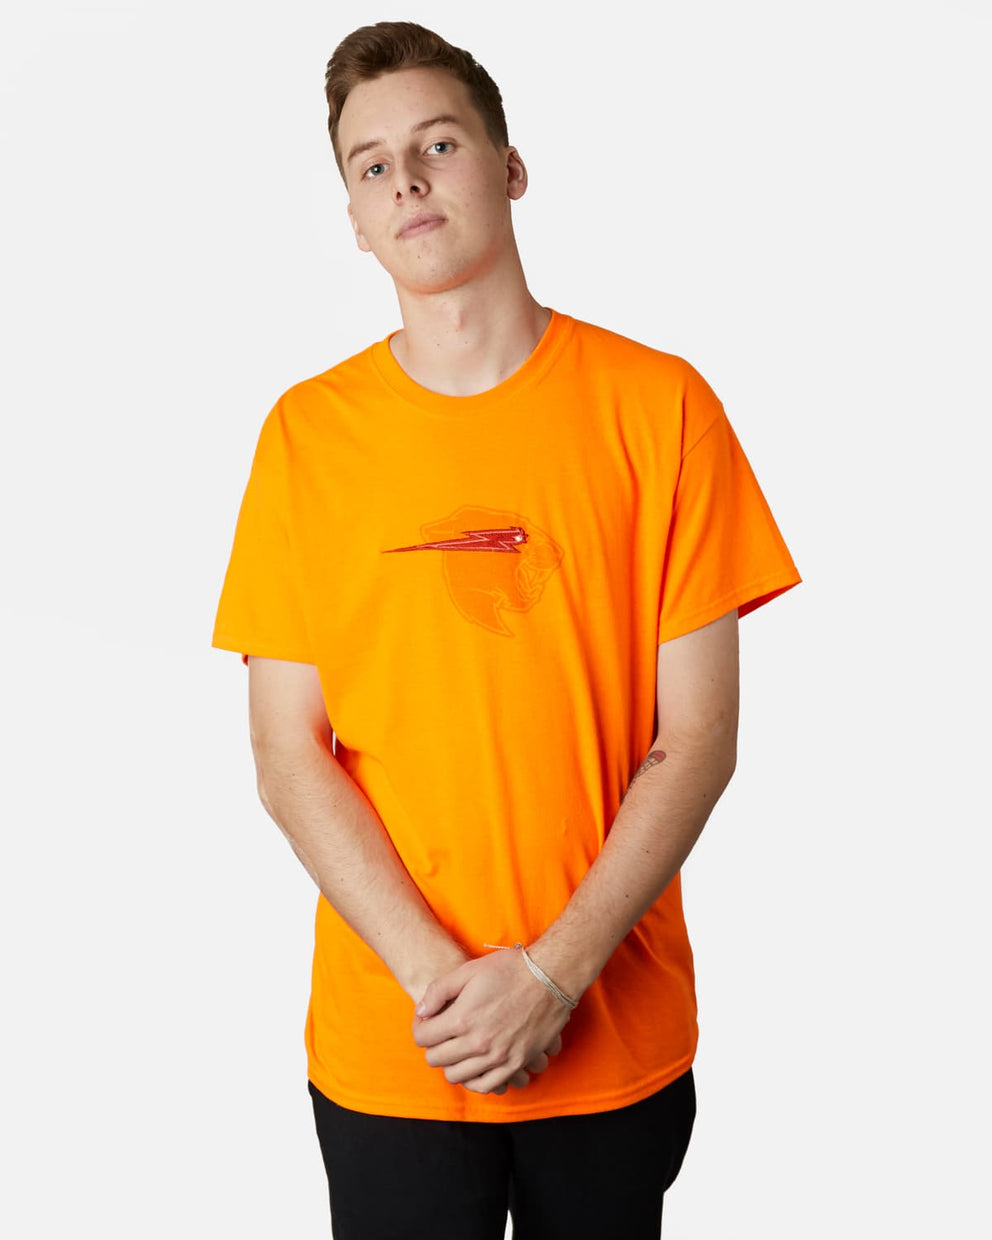 'Beast Head' Embroidery Tee - Orange